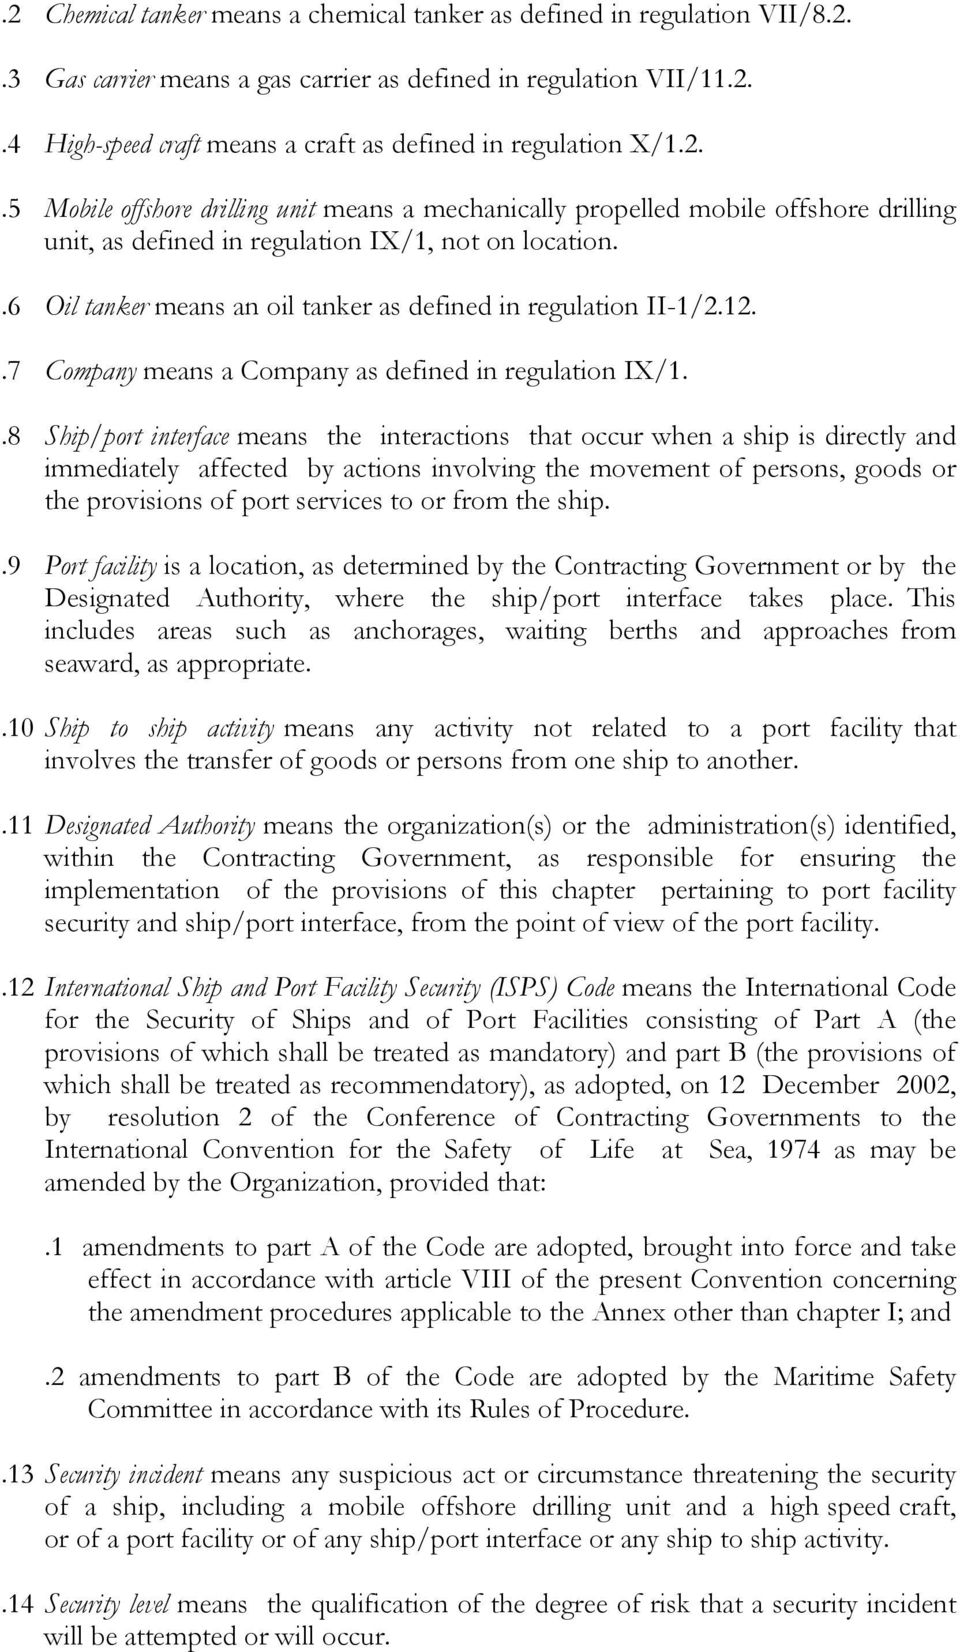 .6 Oil tanker means an oil tanker as defined in regulation II-1/2.12..7 Company means a Company as defined in regulation IX/1.